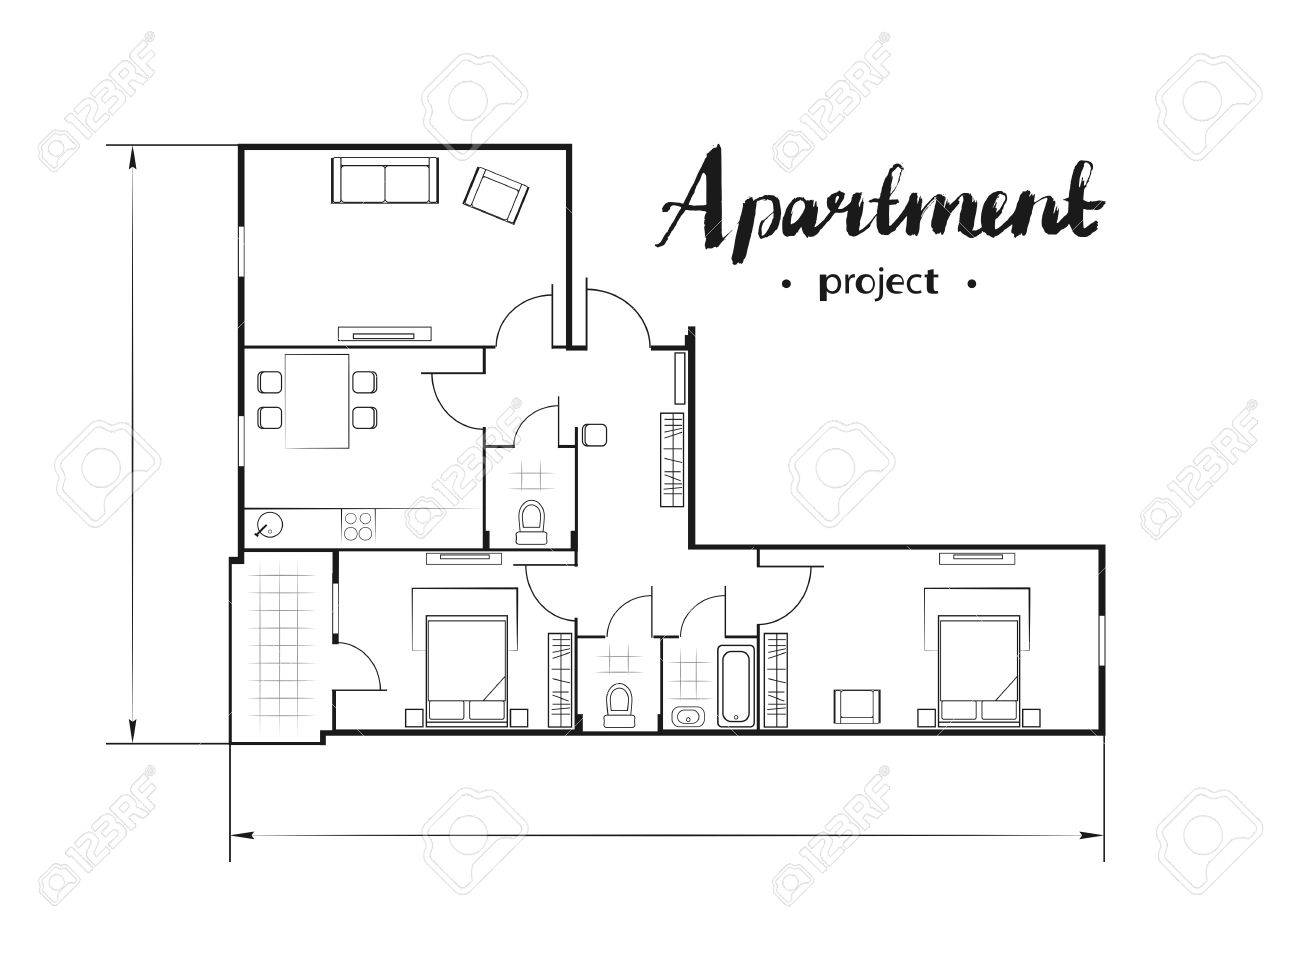 Apartment Project With Furniture Kitchen Living Room Two Bedroom And Balcony Handwritten